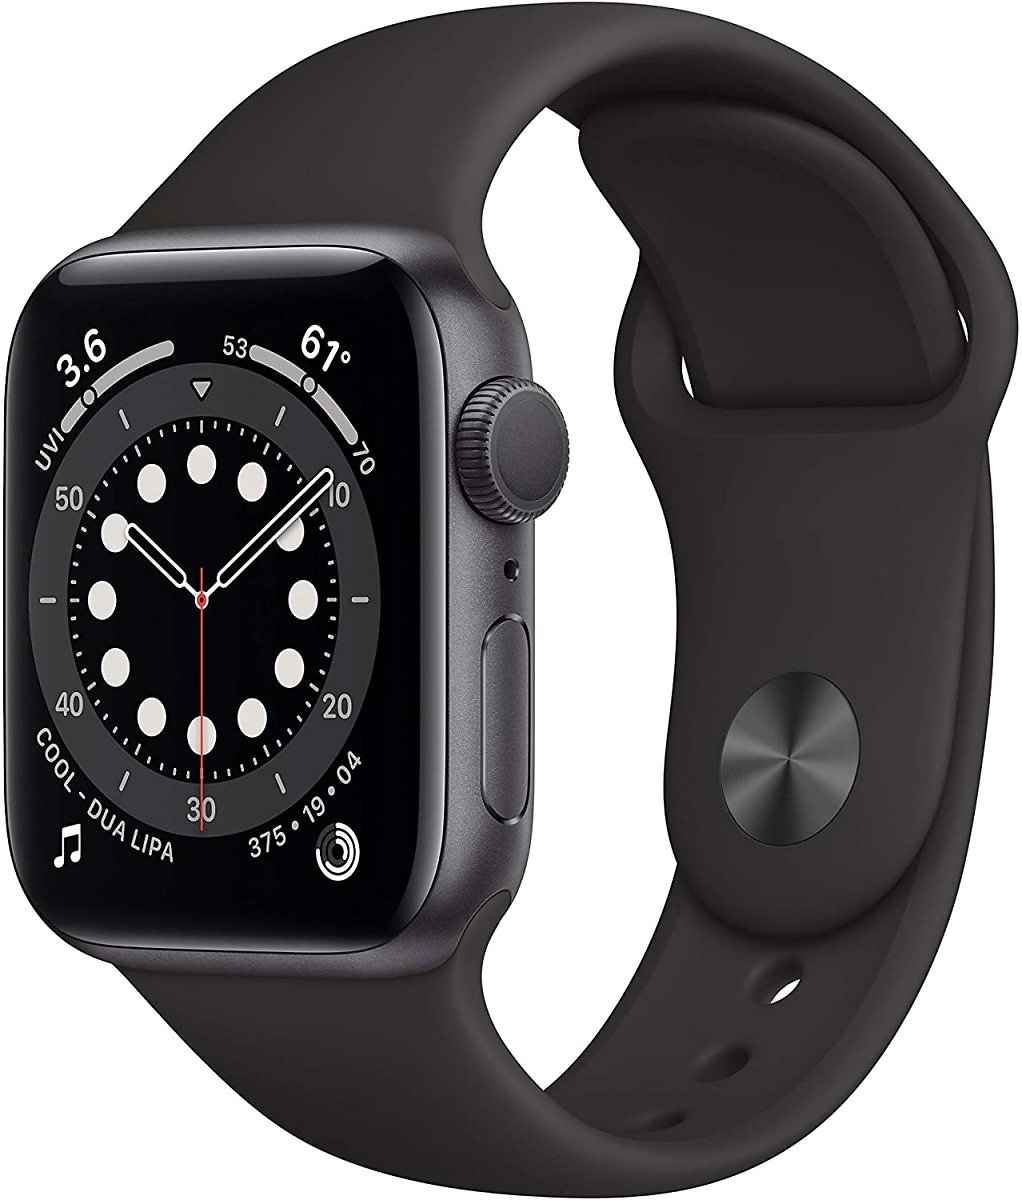 Apple Watch Series 6 (GPS, 40mm) Space Gray Aluminum Case with Black Sport Band